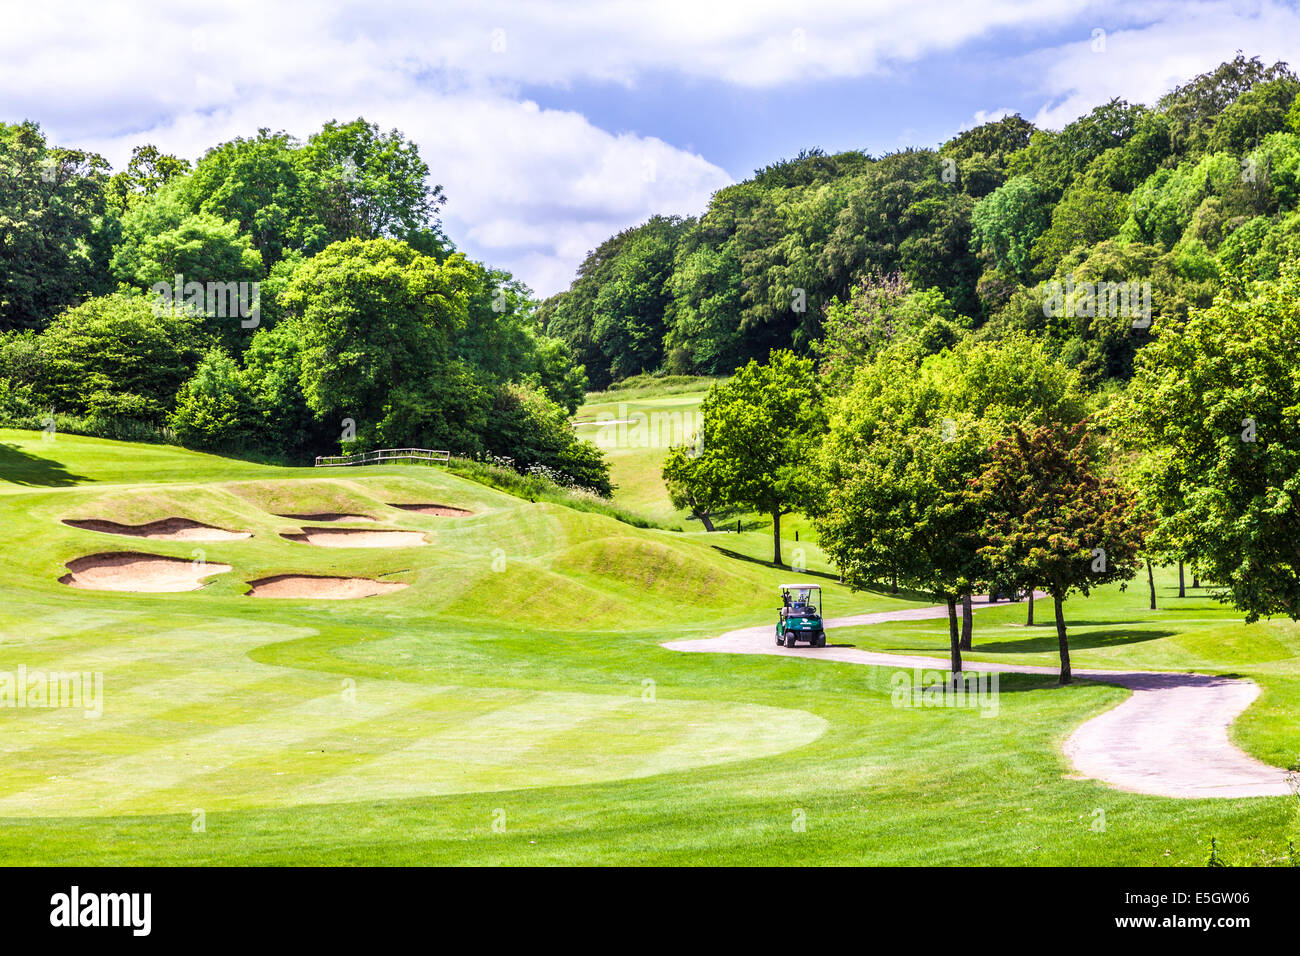 Bunkers, putting green and buggy on a typical golf course. - Stock Image